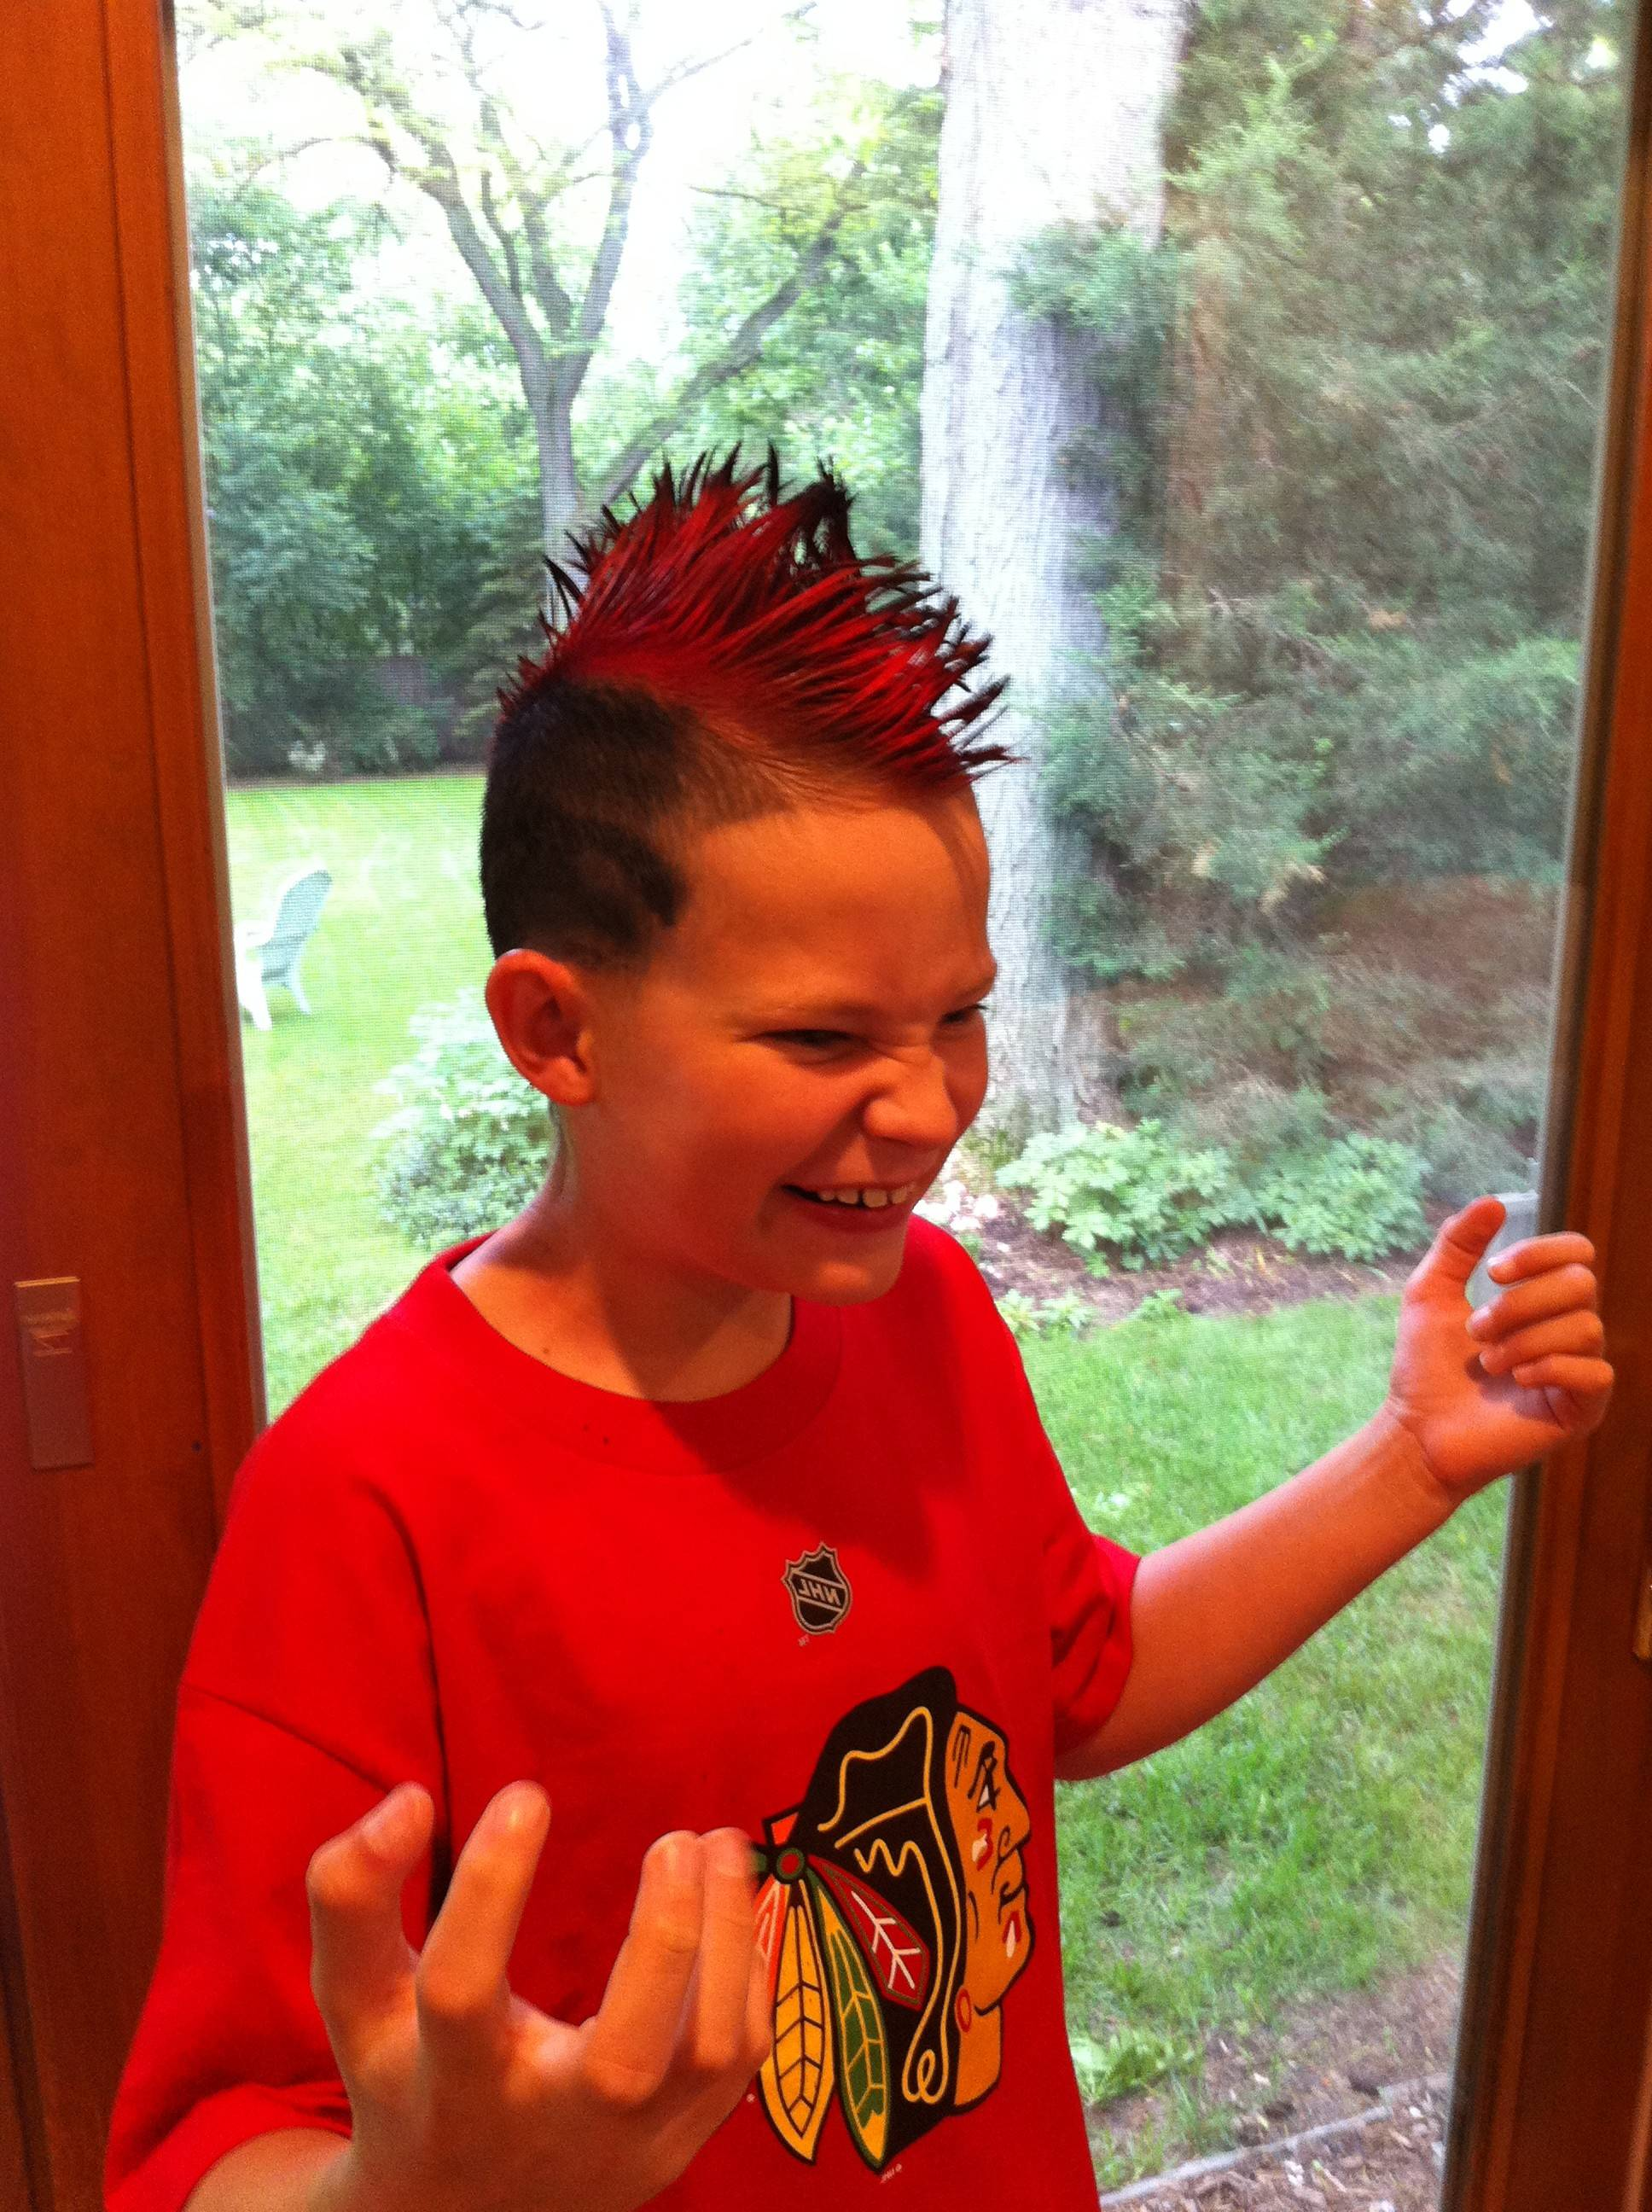 Louie Nielsen, 10, prepares for Blackhawks Day at band camp in Wheaton.